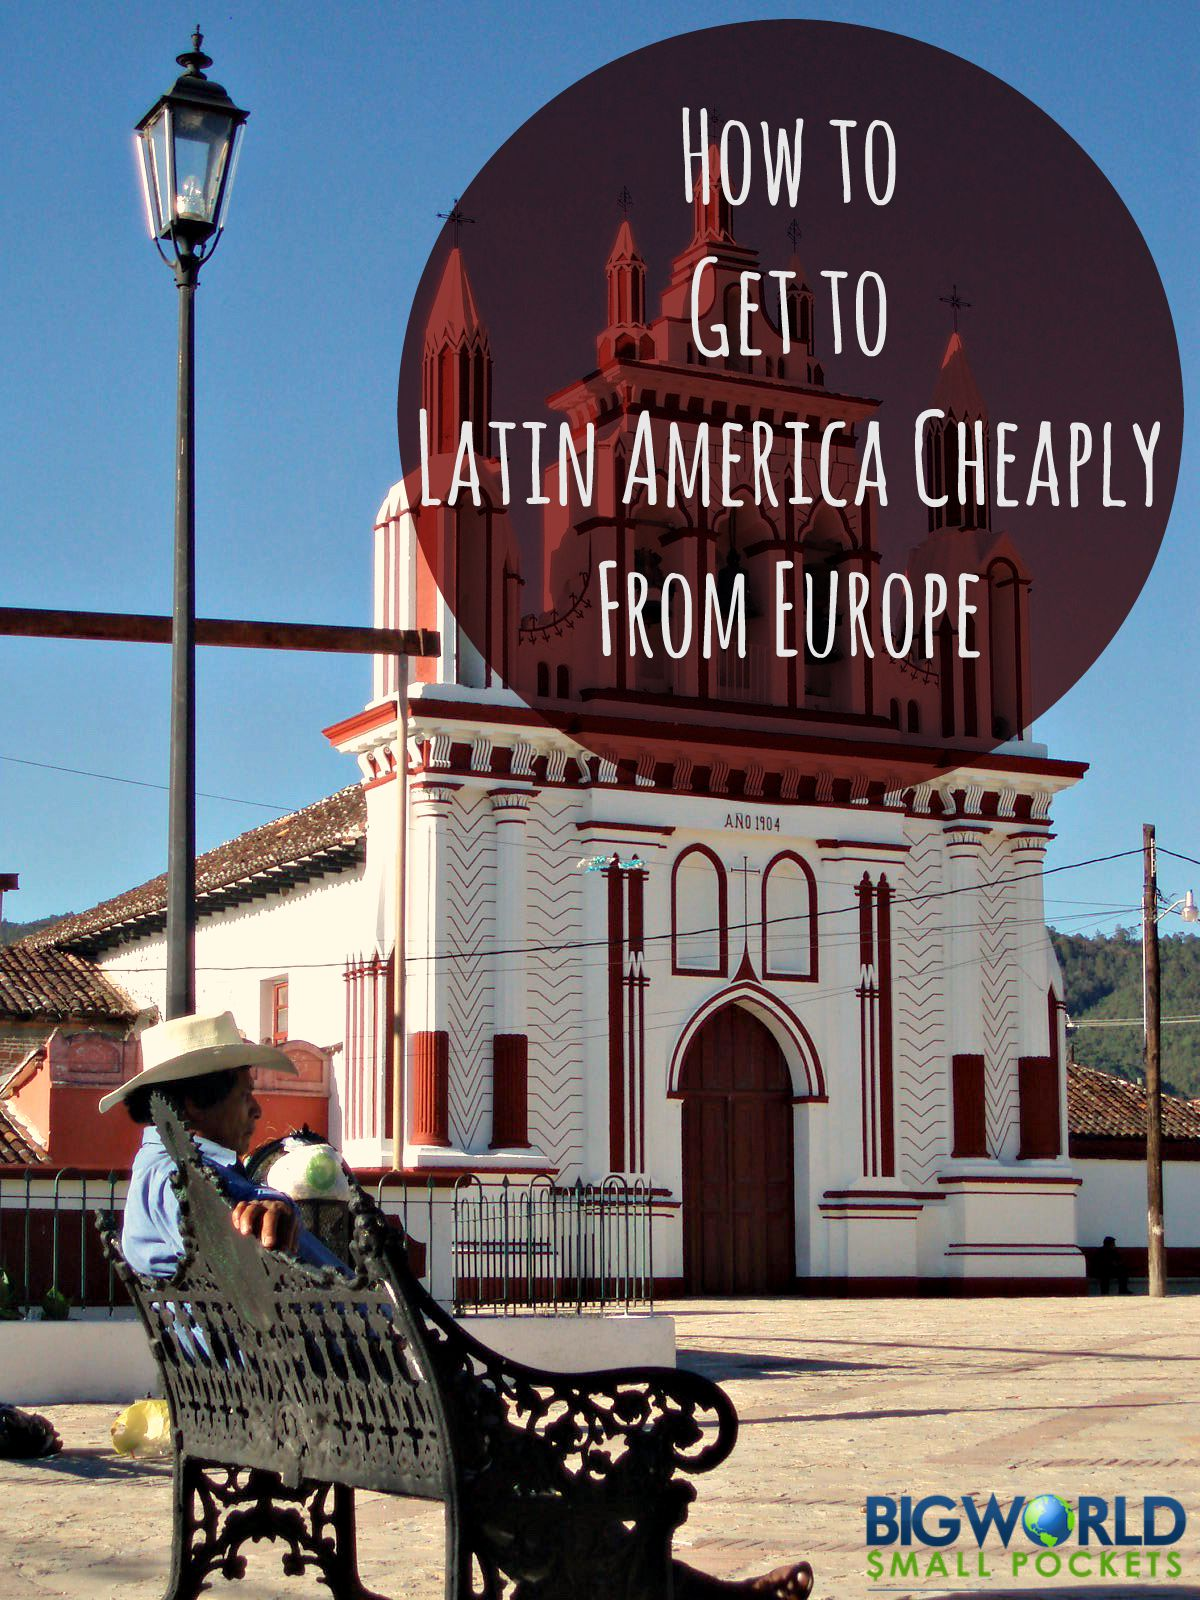 How to Get to Latin America Cheaply From Europe {Big World Small Pockets}